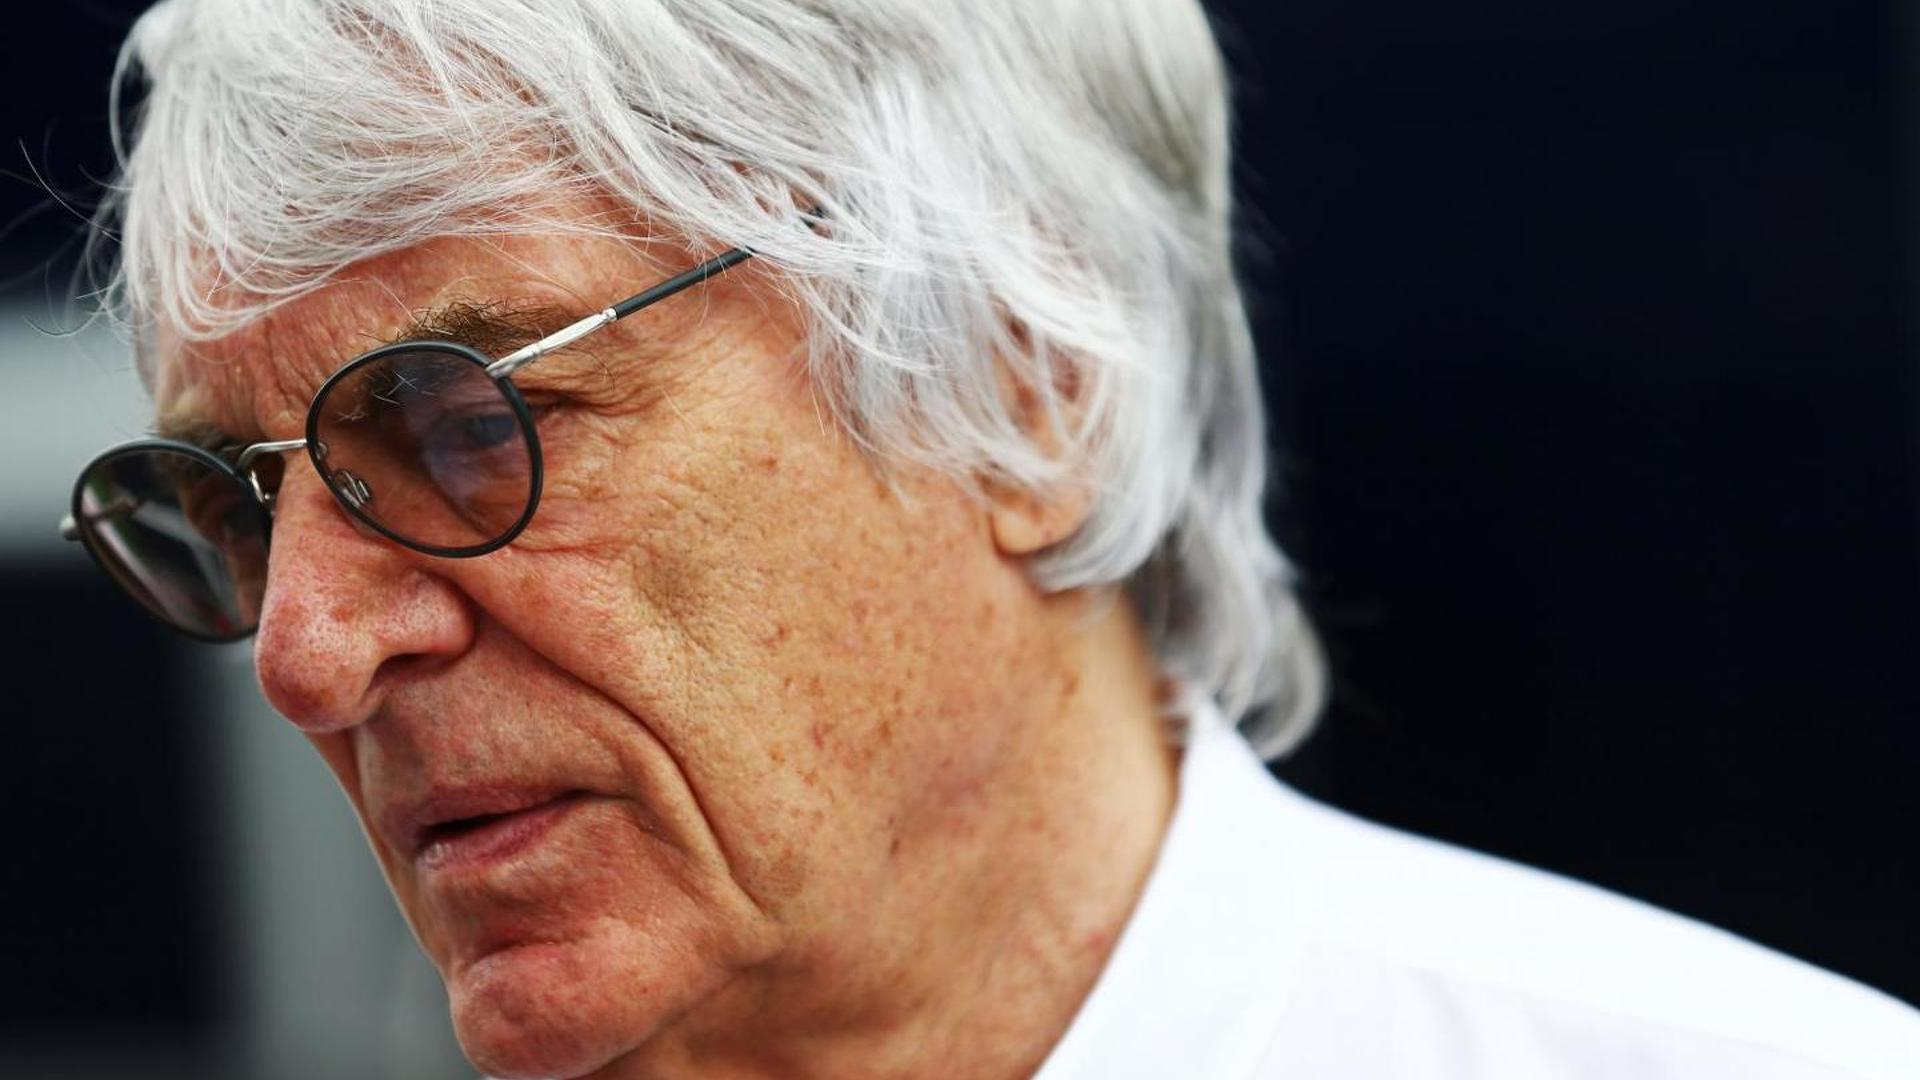 Ecclestone 'will be replaced' - Stewart